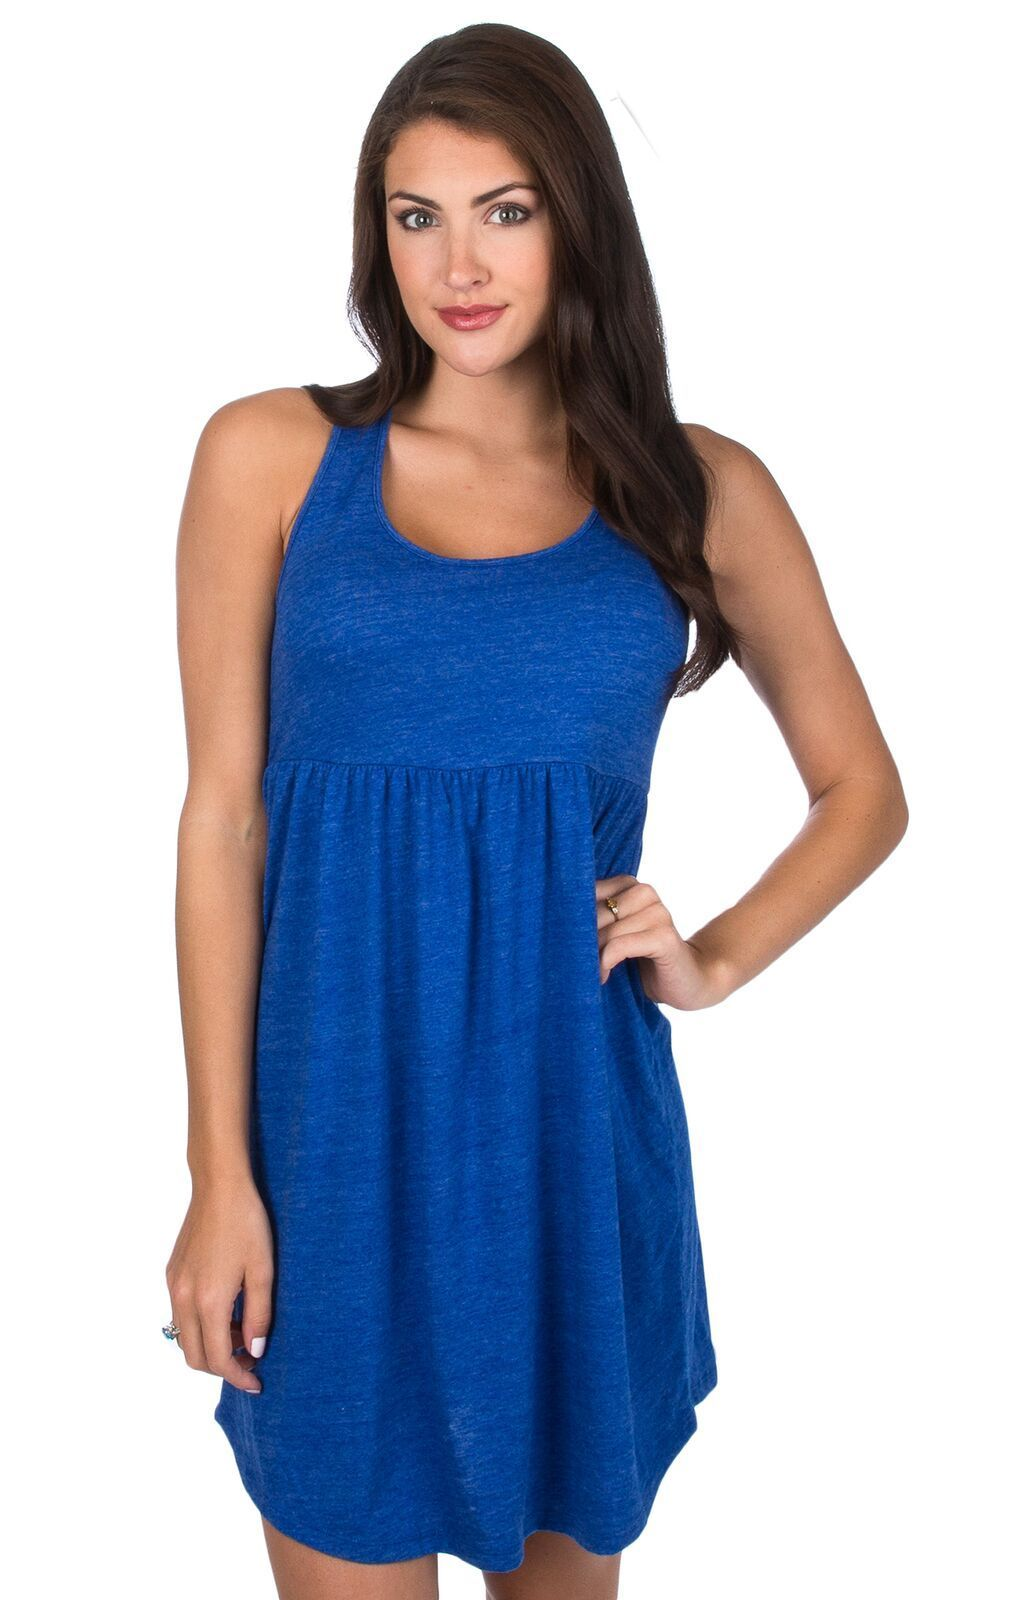 Royal - Everly Dress - Front 1